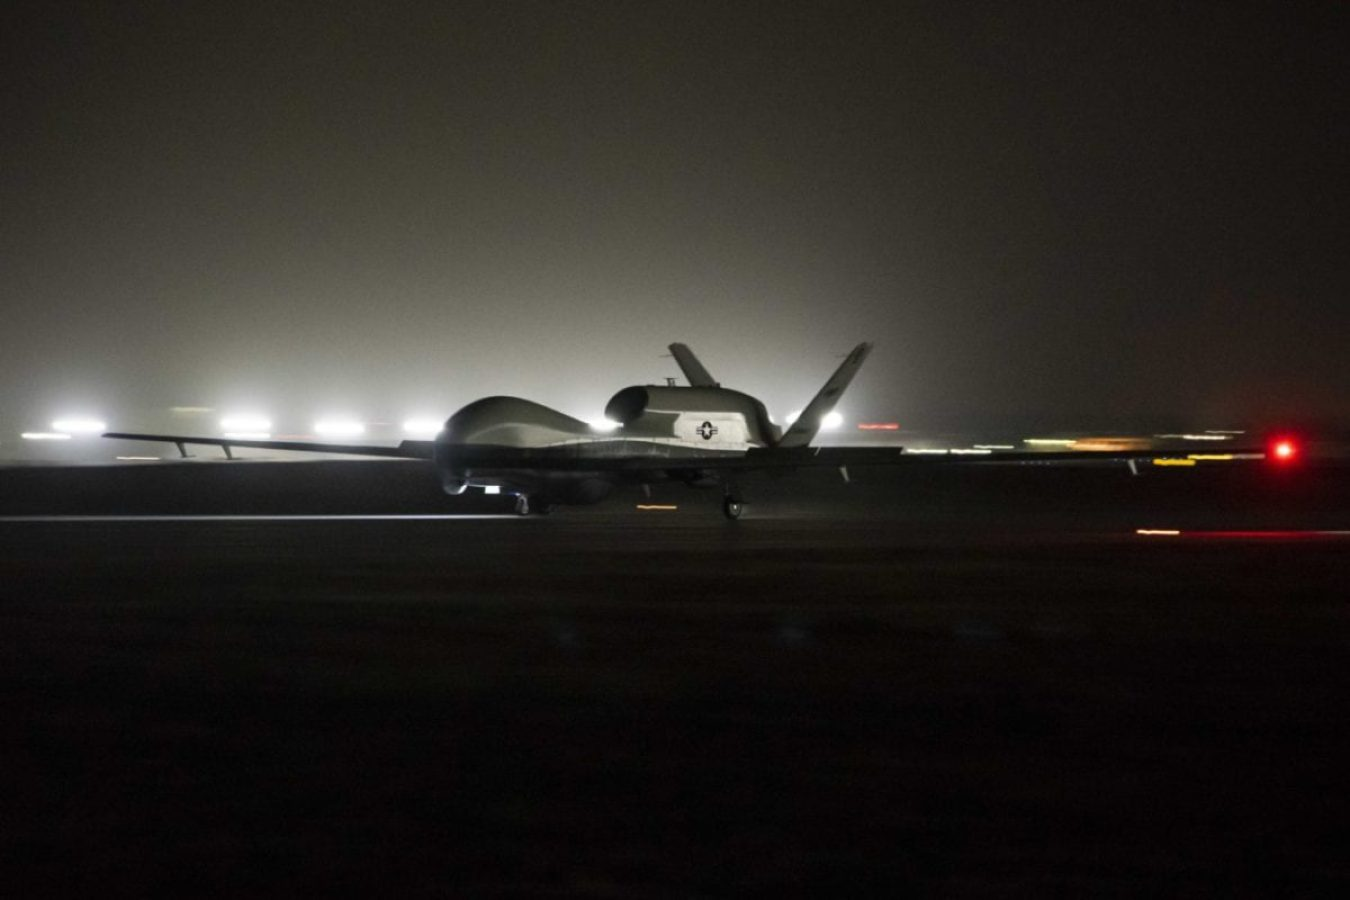 An MQ-4C Triton unmanned aircraft system (UAS) idles on a runway at Andersen Air Force Base after arriving for a deployment as part of an early operational capability (EOC) test to further develop the concept of operations and fleet learning associated with operating a high-altitude, long-endurance system in the maritime domain. (U.S. Navy photo by Mass Communication Specialist 3rd Class MacAdam Kane Weissman/Released)